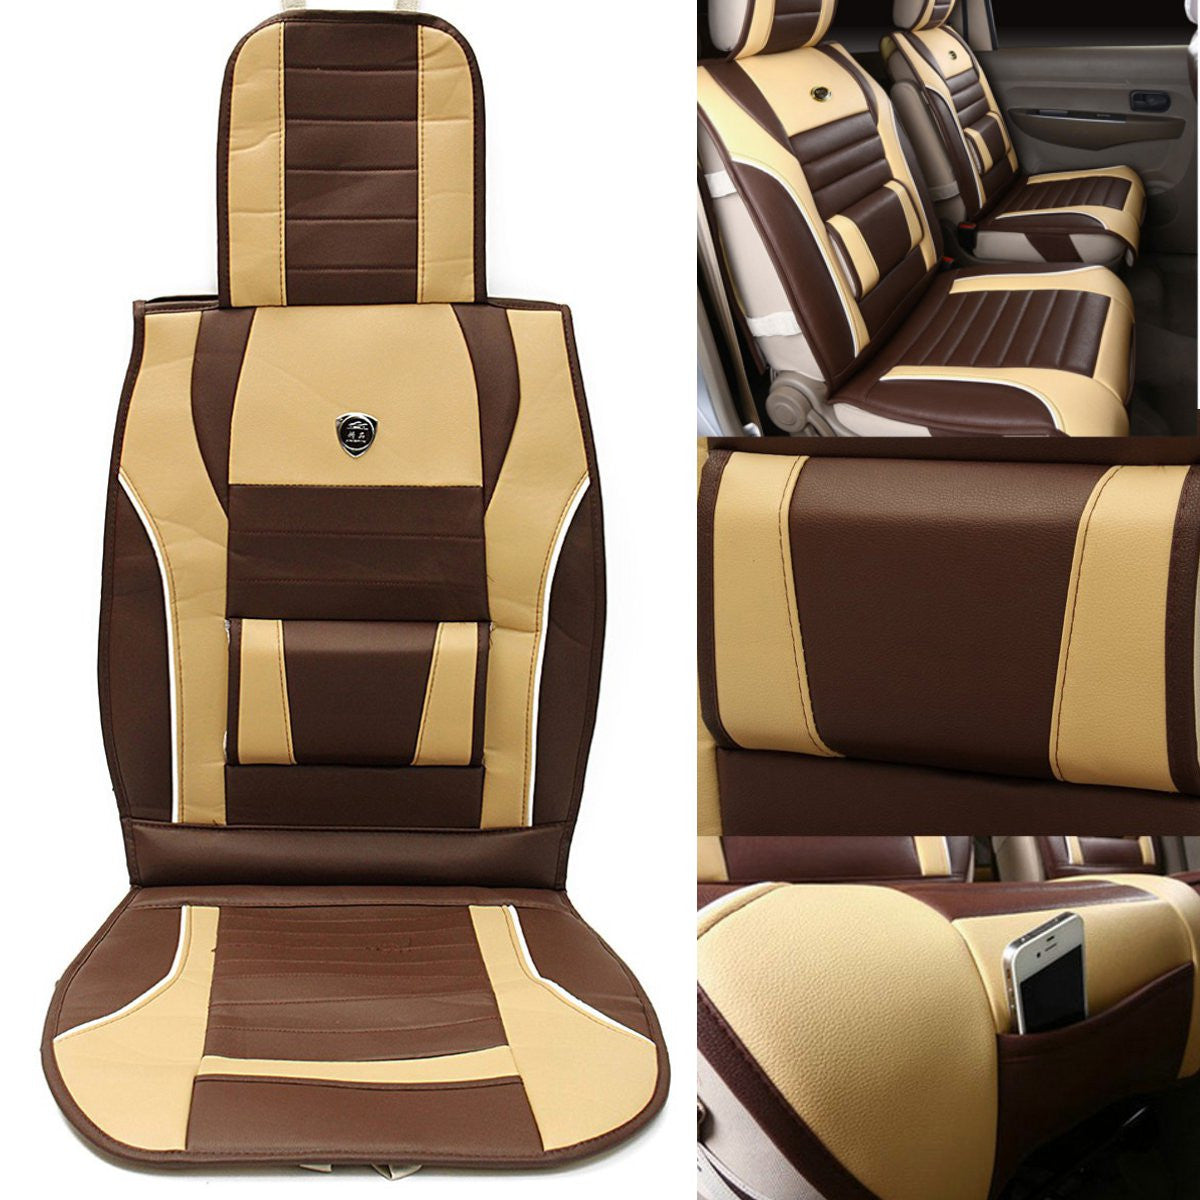 1 Piece Universal Car Seat Cover